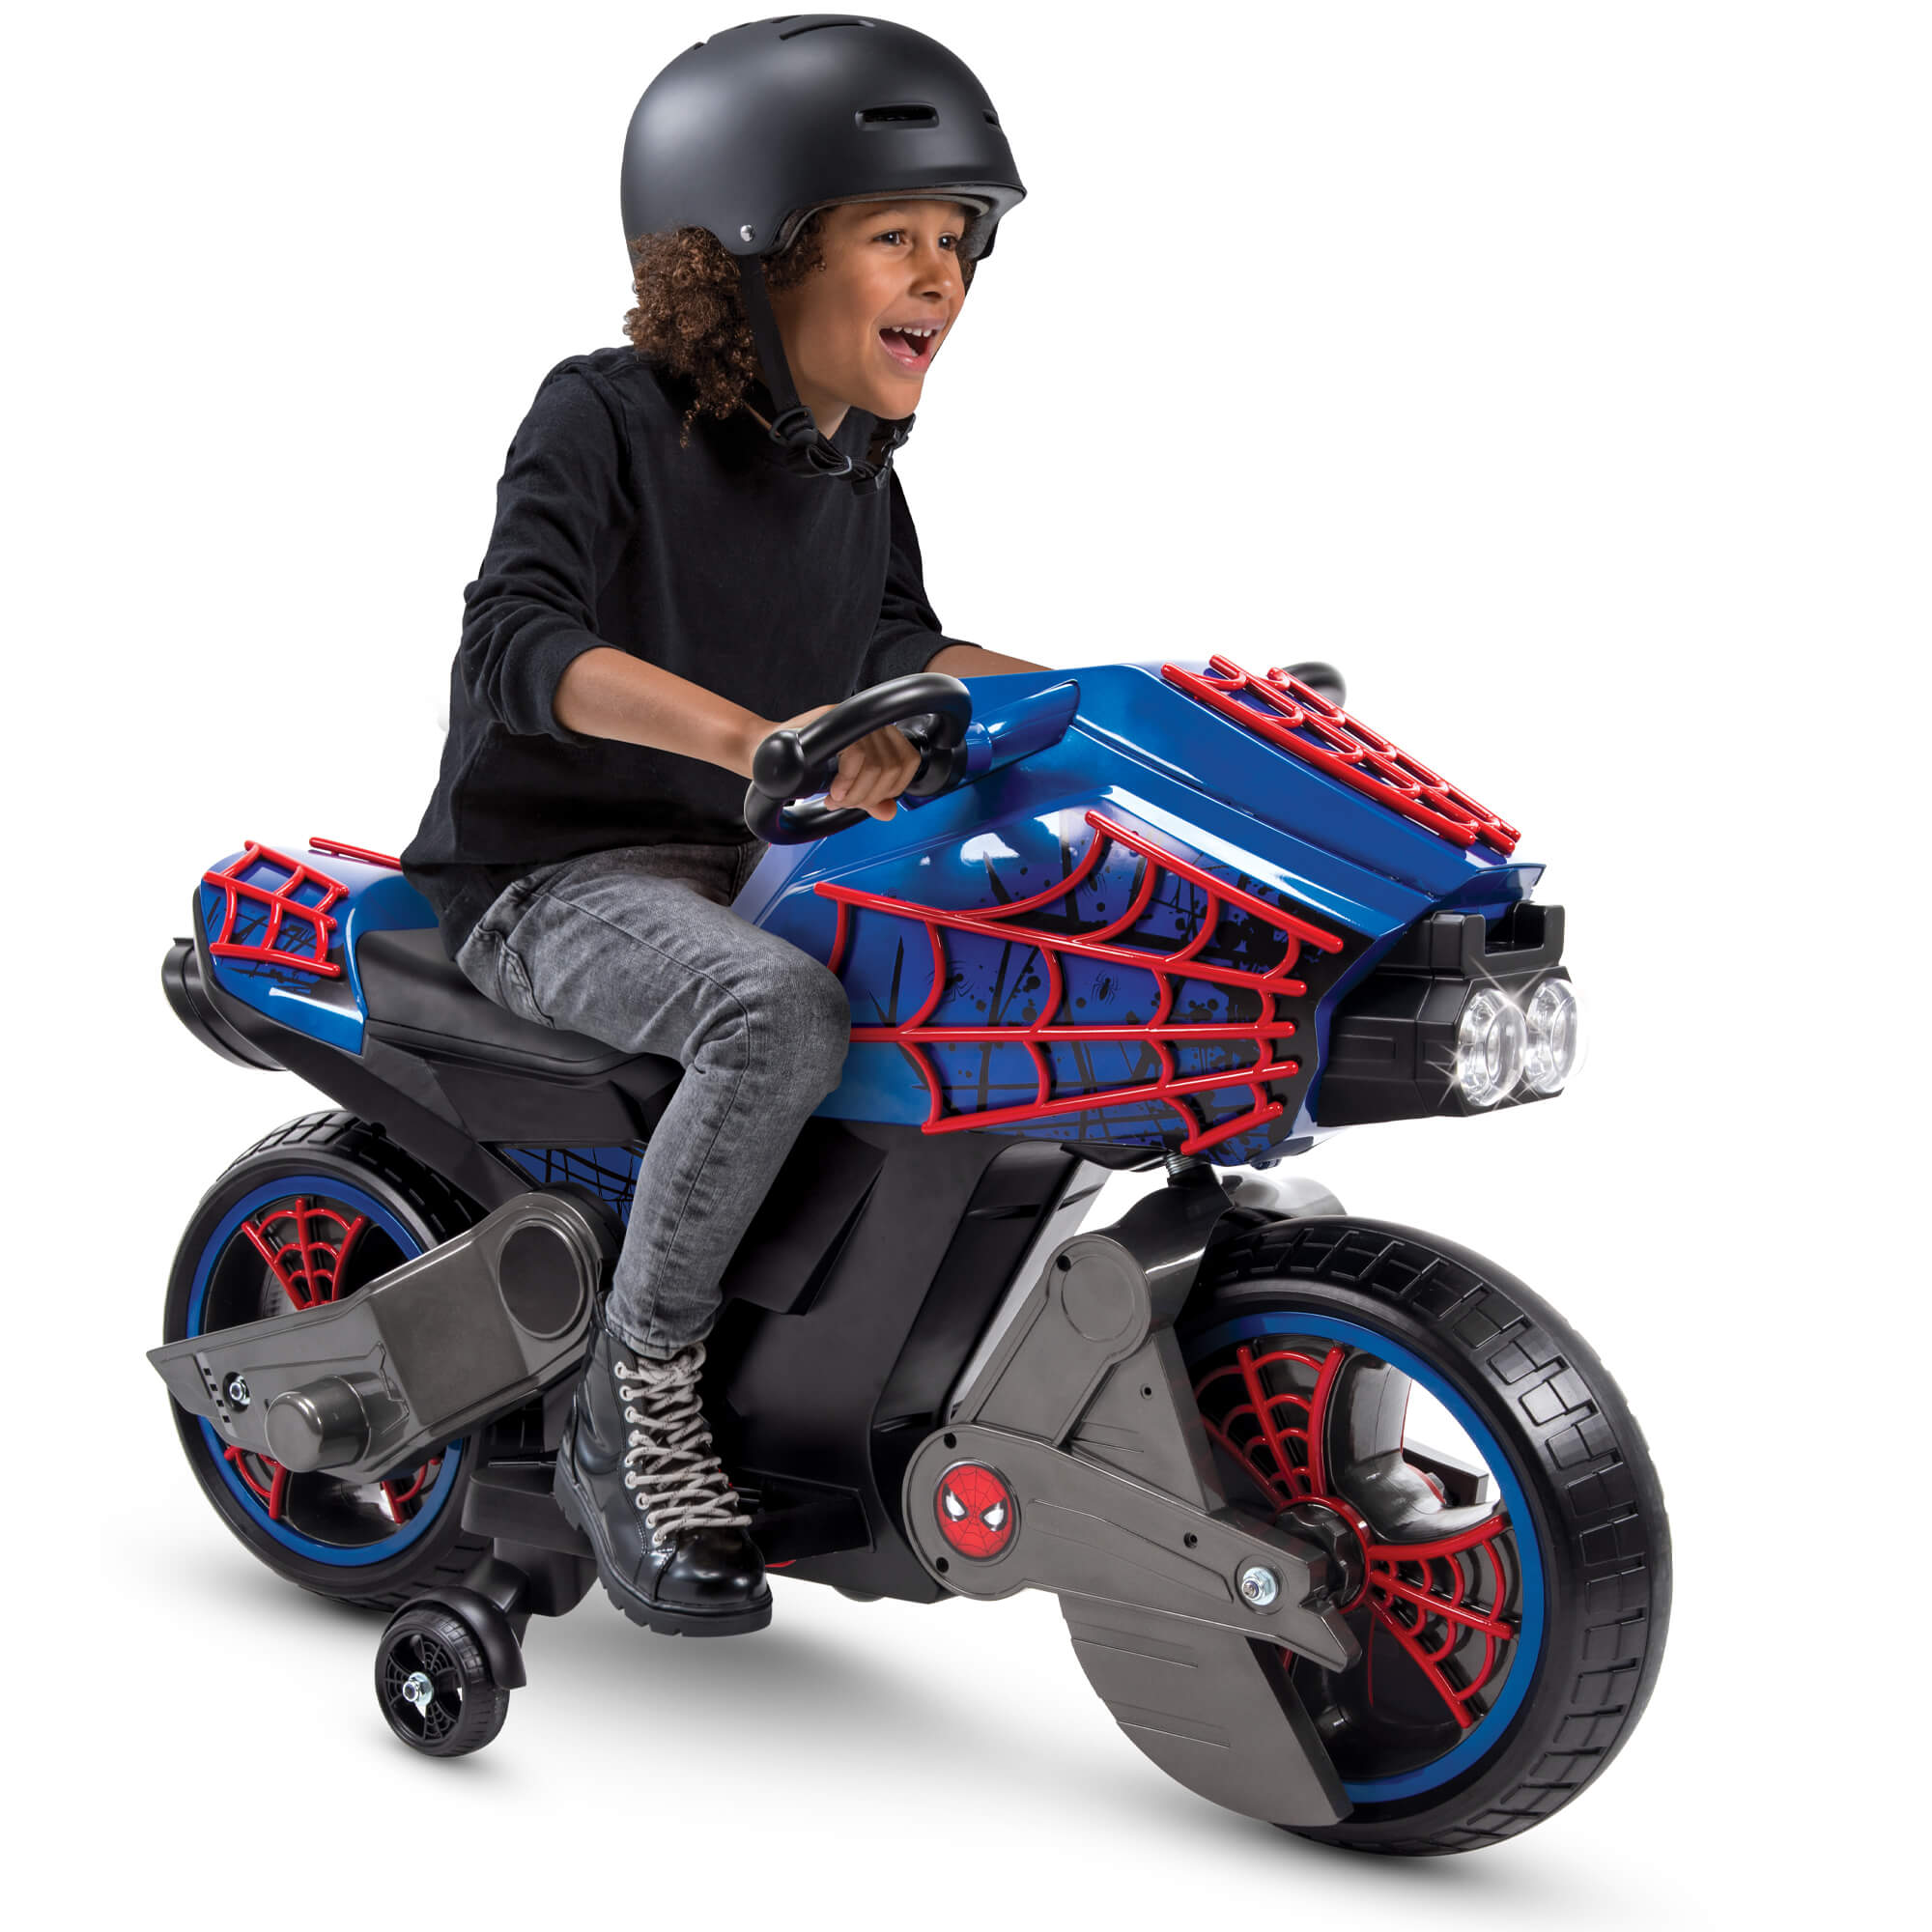 Marvel Spider-Man 6V Battery-Powered Motorcycle Ride-On Toy by Huffy